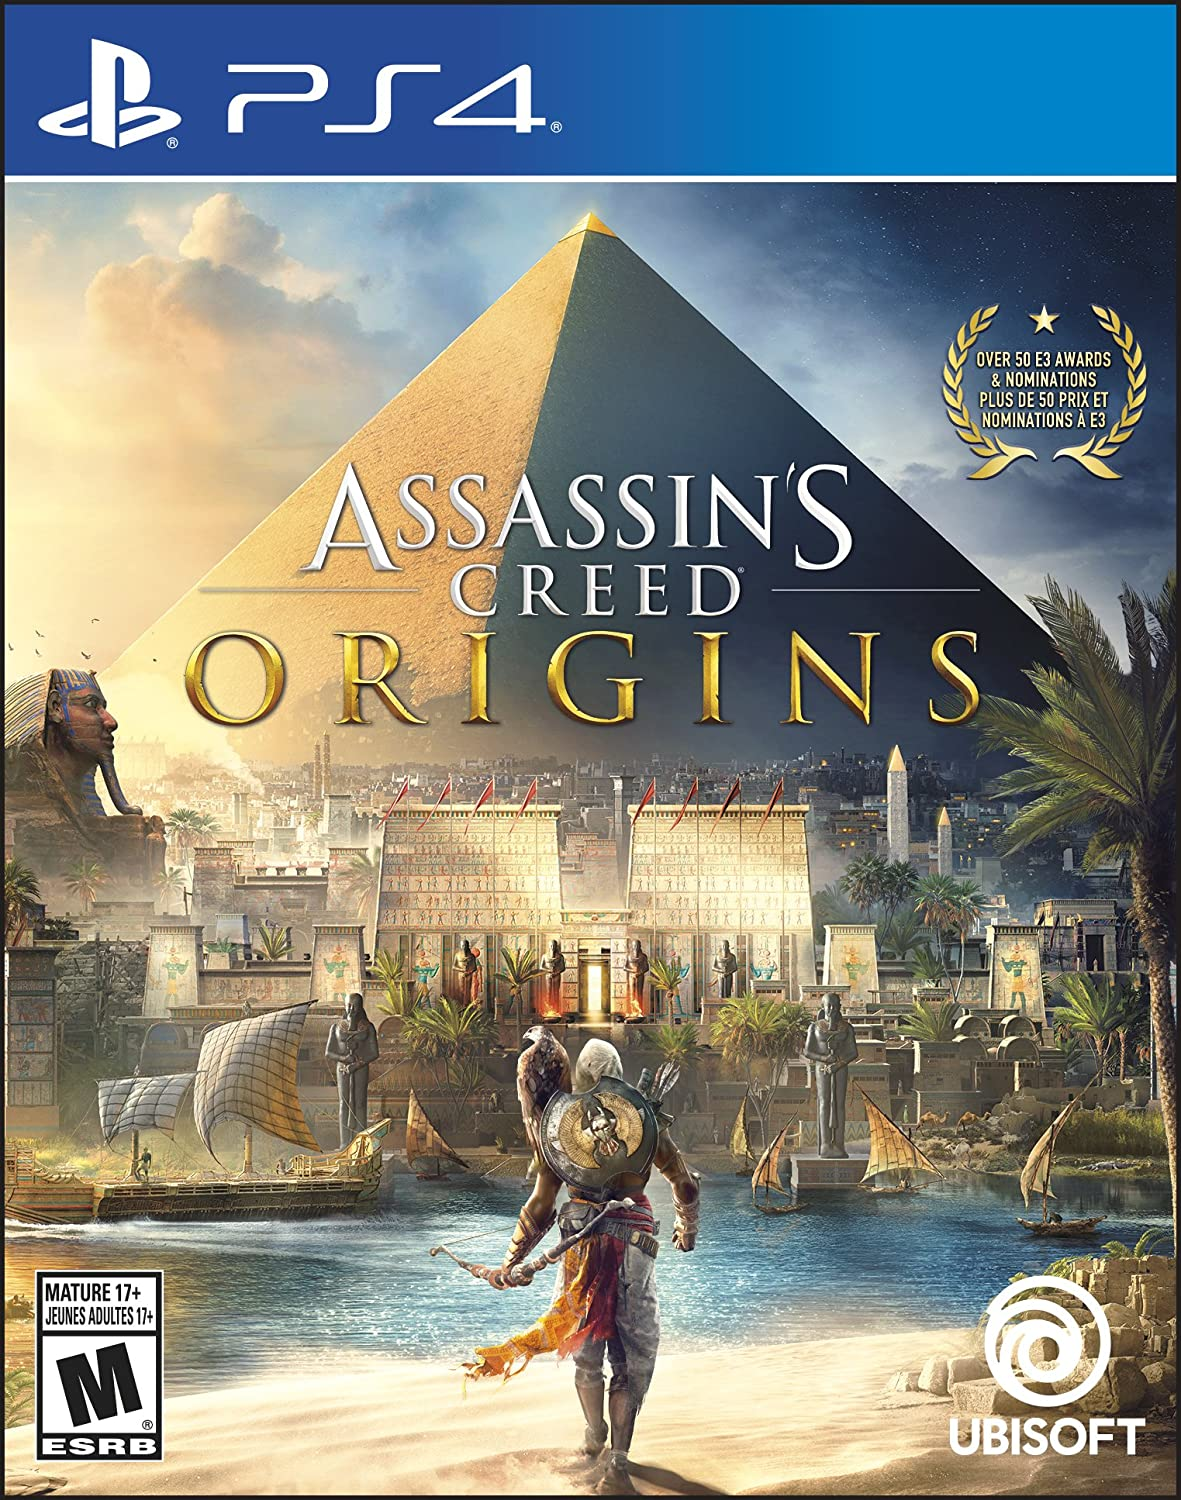 Assassins Creed Origins Standard Edition - PlayStation 4  PlayStation 4   Computer and Video Games - Amazon.ca 23b091f170